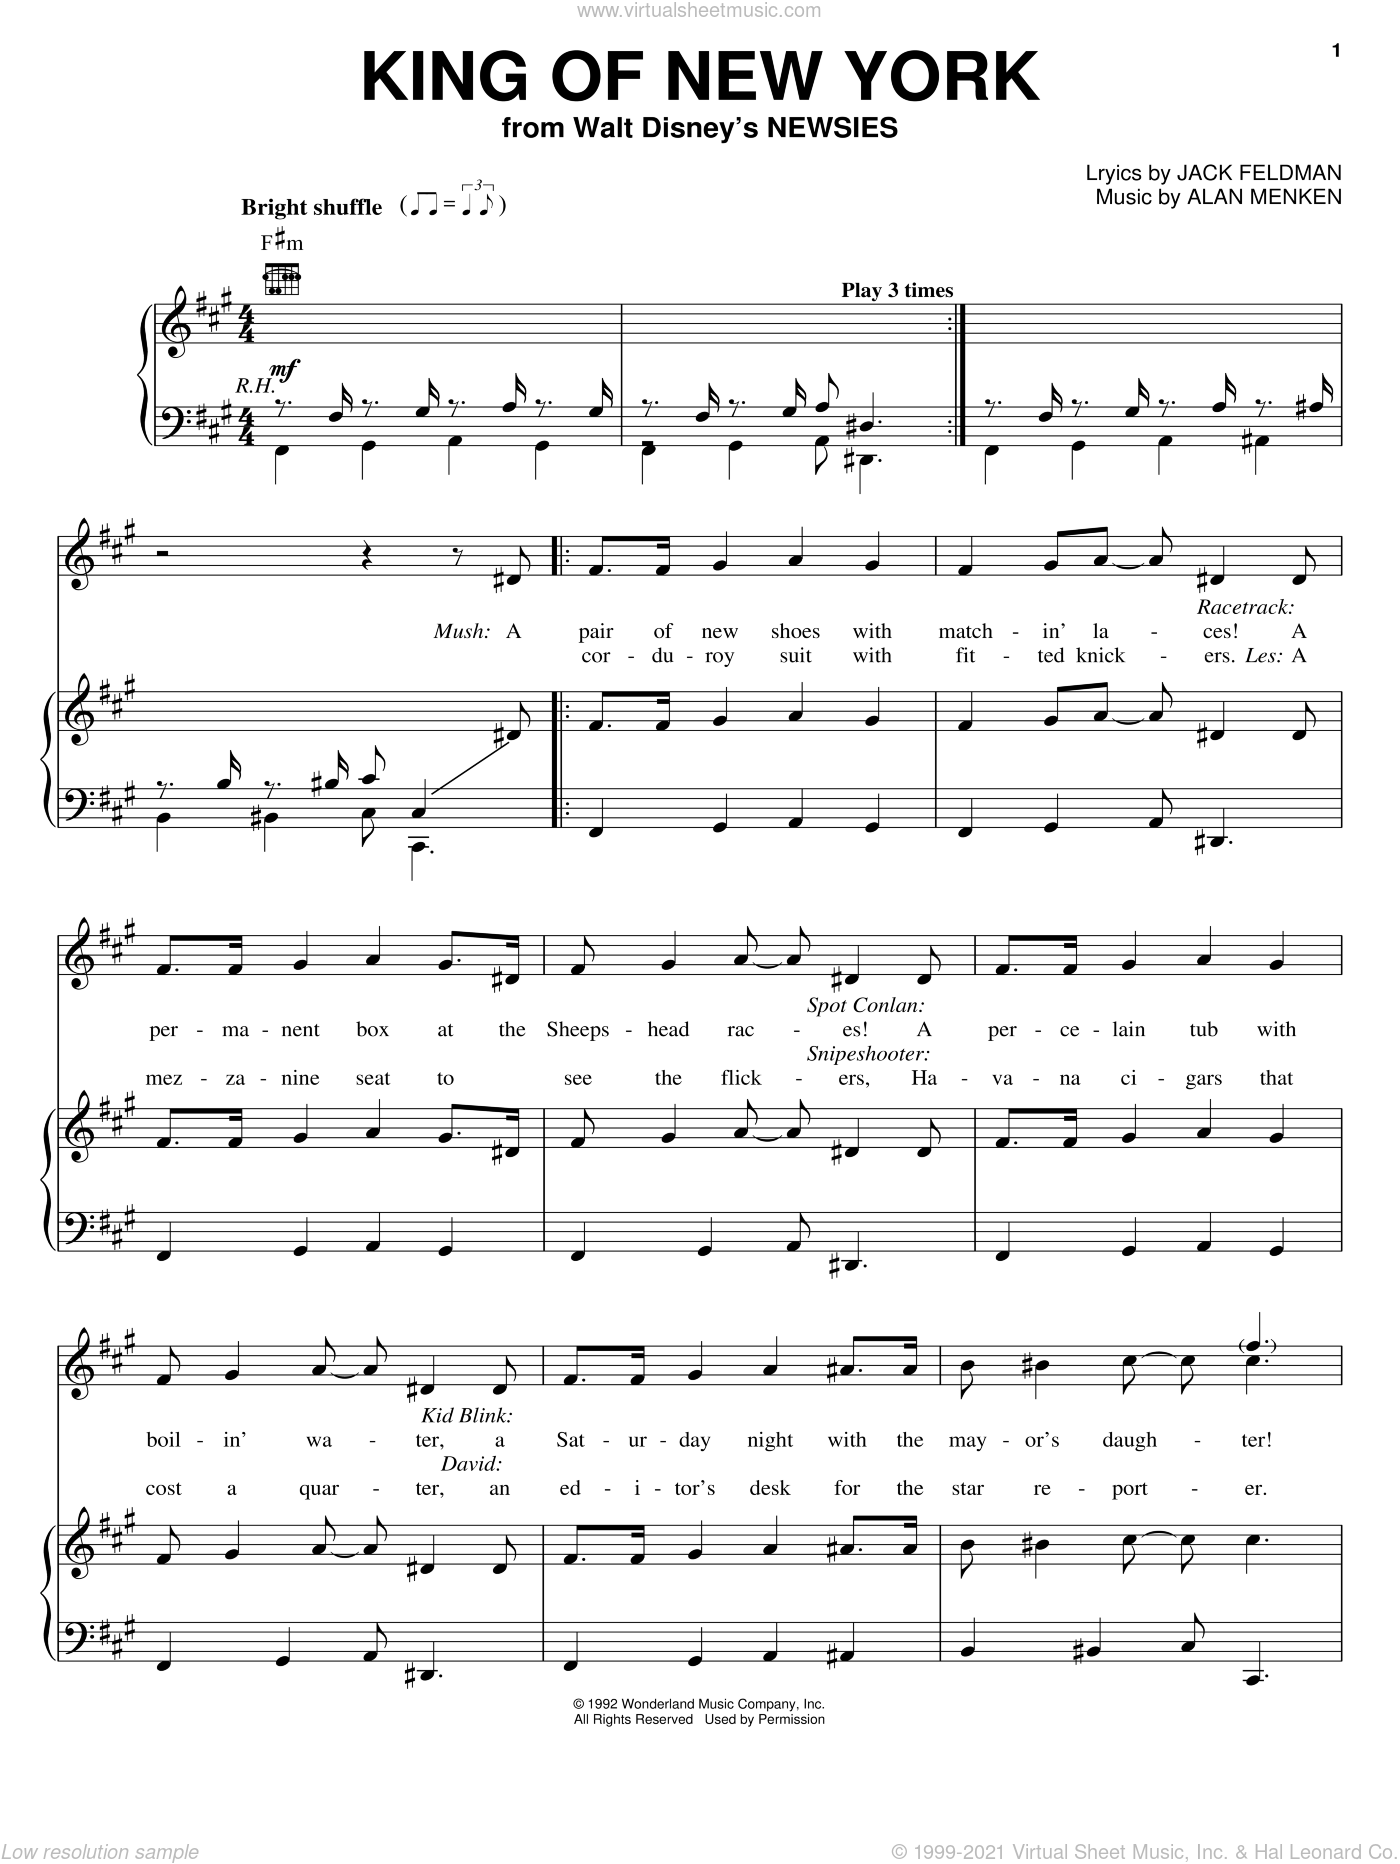 King Of New York sheet music for voice, piano or guitar by Jack Feldman and Alan Menken, intermediate voice, piano or guitar. Score Image Preview.